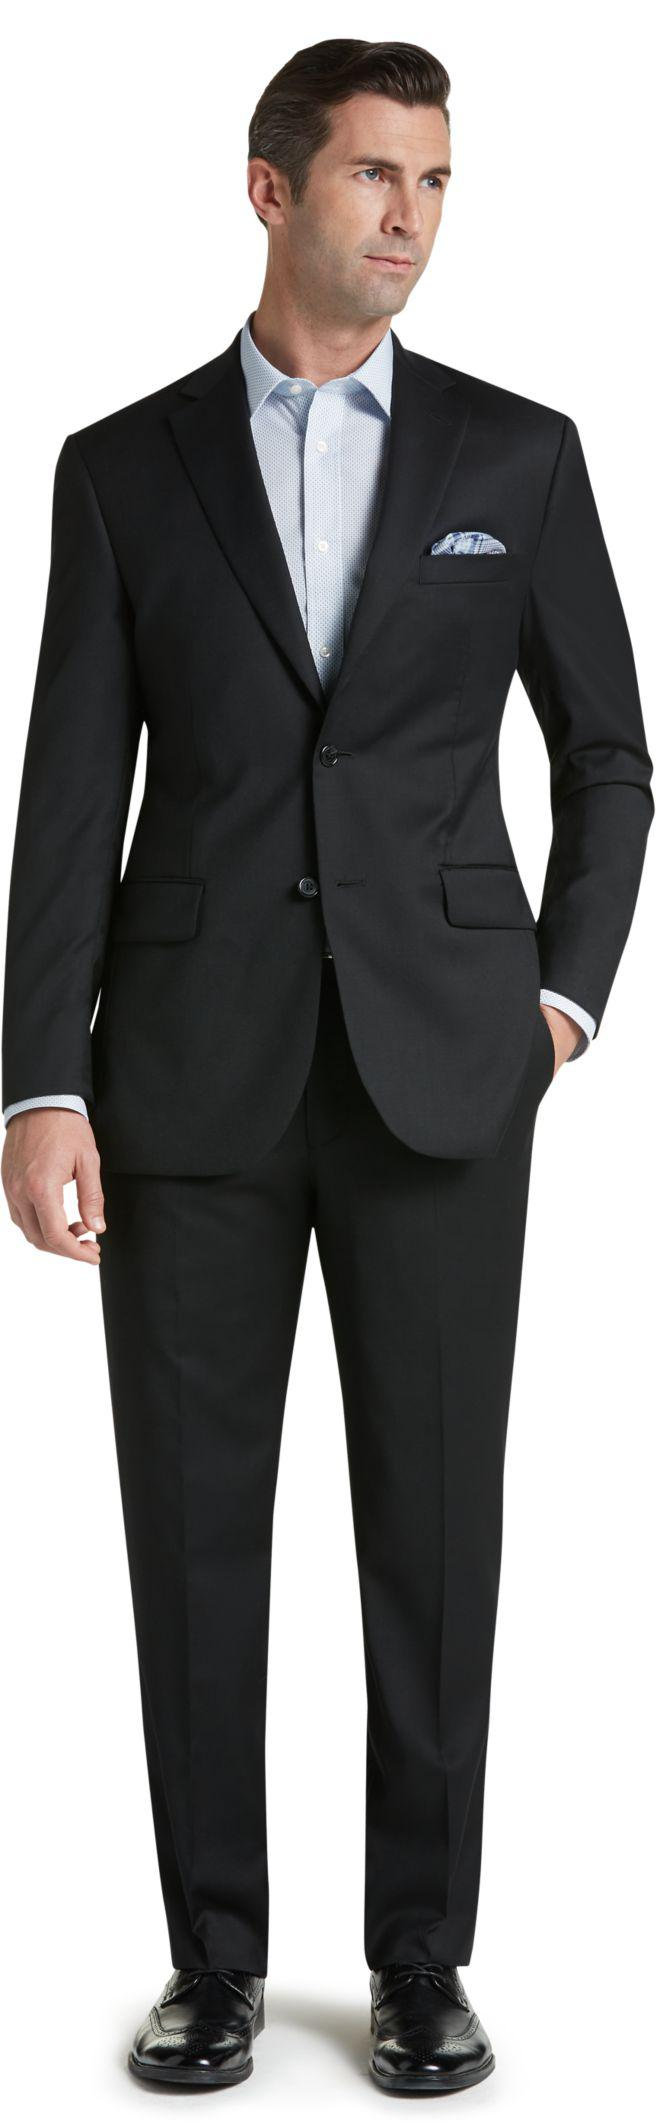 169b8985535 Lyst - Jos. A. Bank Signature Collection Tailored Fit Suit in Black ...